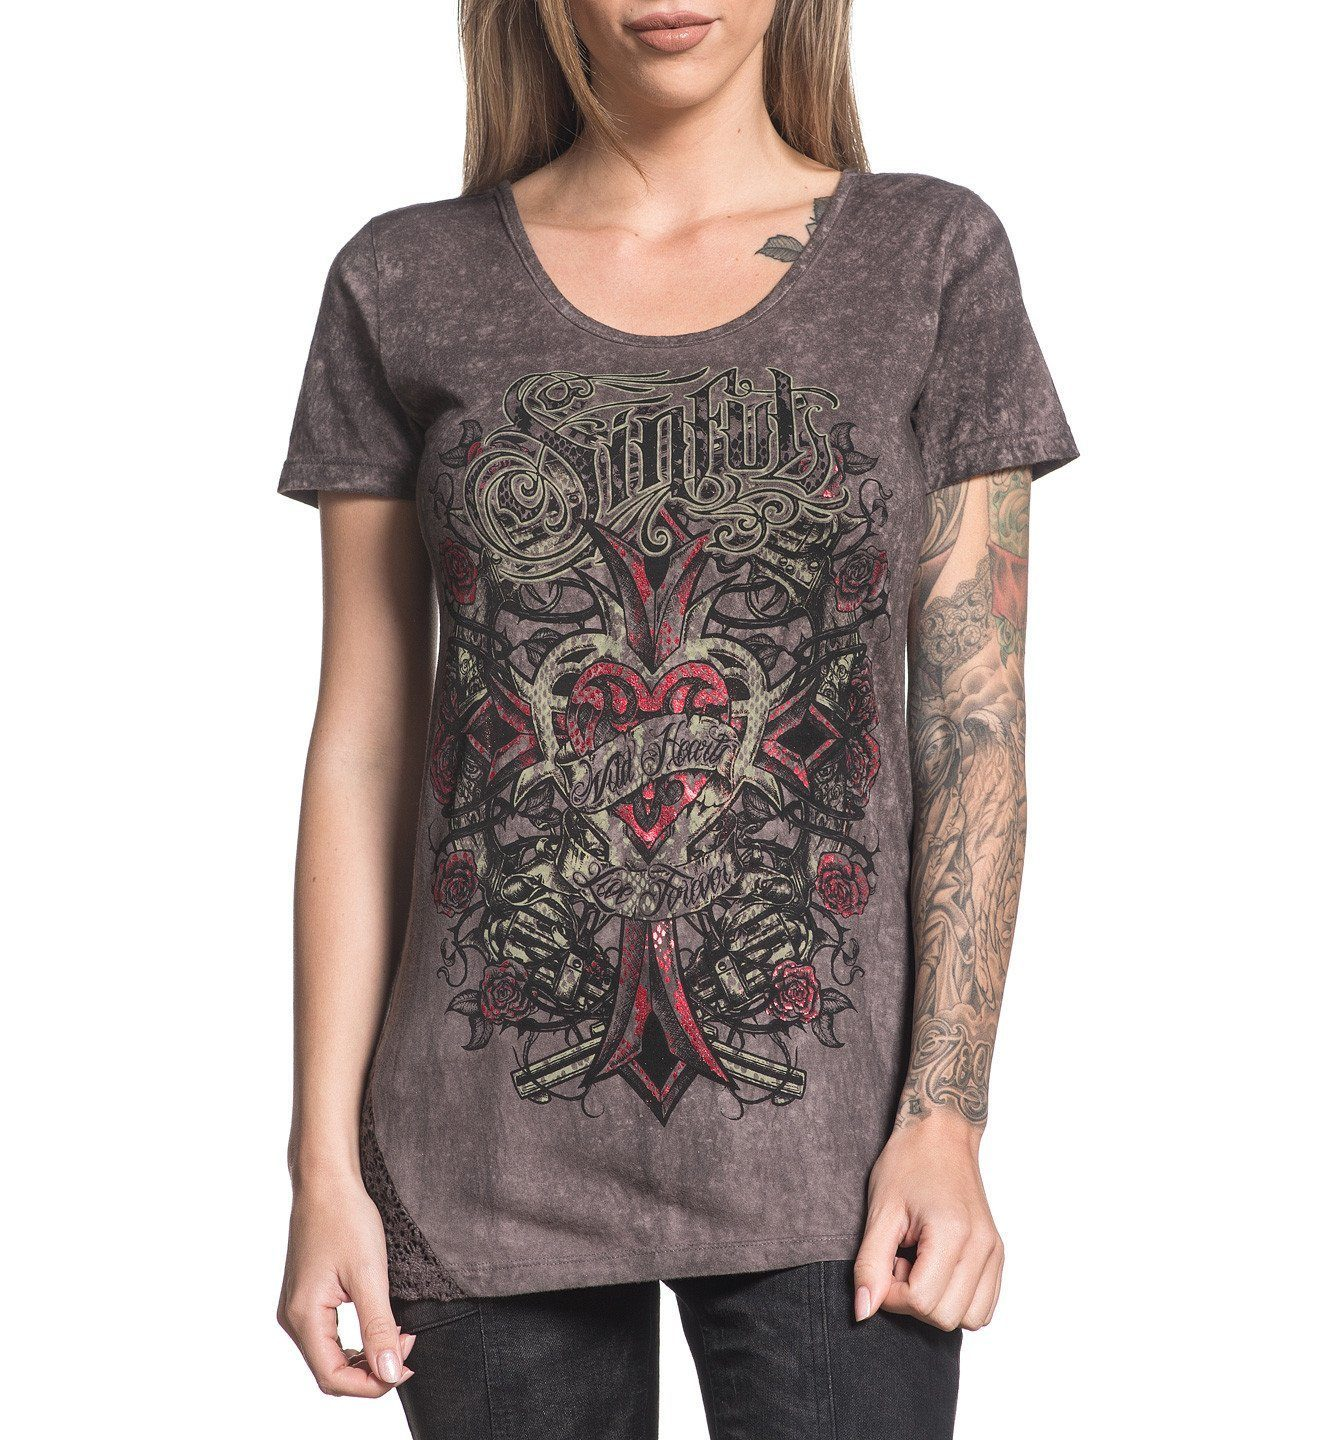 Womens Short Sleeve Tees - Calamity Jane